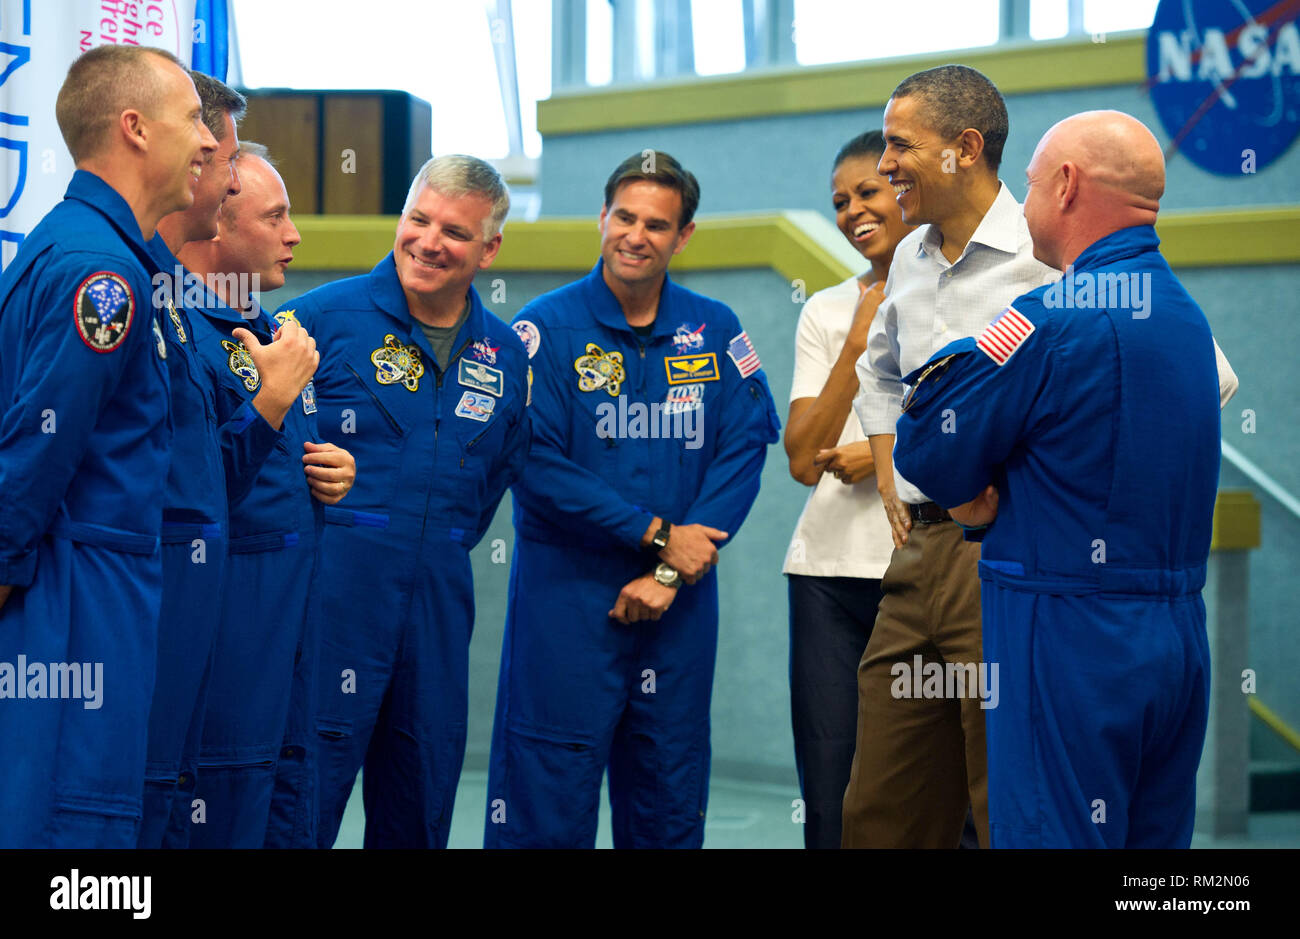 United States President Barack Obama and First Lady Michelle Obama meet with STS-134 space shuttle Endeavor commander Mark Kelly, right, and shuttle astronauts, from left, Andrew Feustel, European Space Agency's Roberto Vittori, Michael Fincke, Gregory H. Johnson, and Greg Chamitoff, after their launch was scrubbed, Friday, April 29, 2011, at Kennedy Space Center in Cape Canaveral, Florida..Mandatory Credit: Bill Ingalls / NASA via CNP /MediaPunch - Stock Image